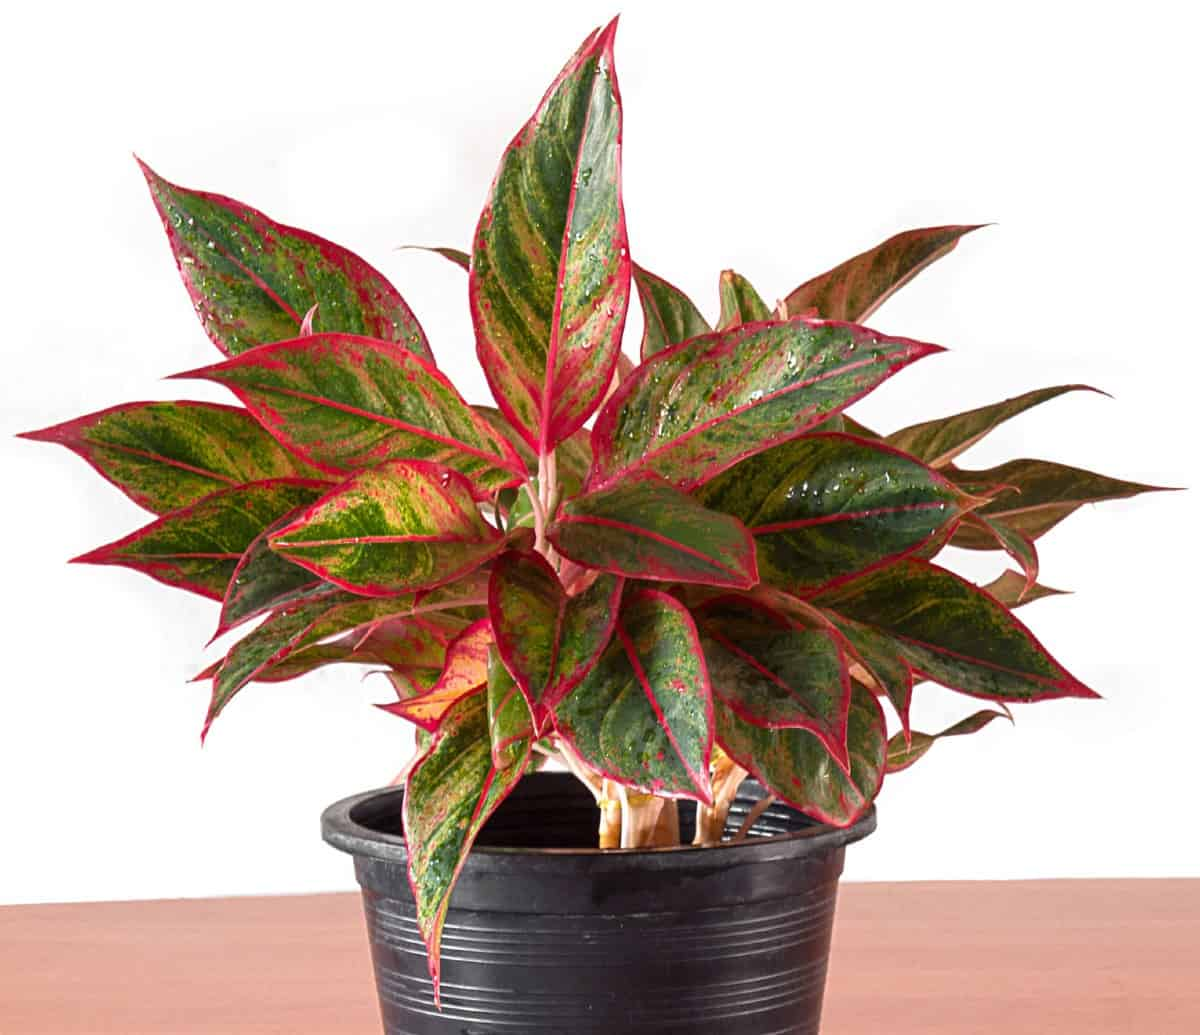 Maintaining an indoor plant like the Chinese evergreen is easy.